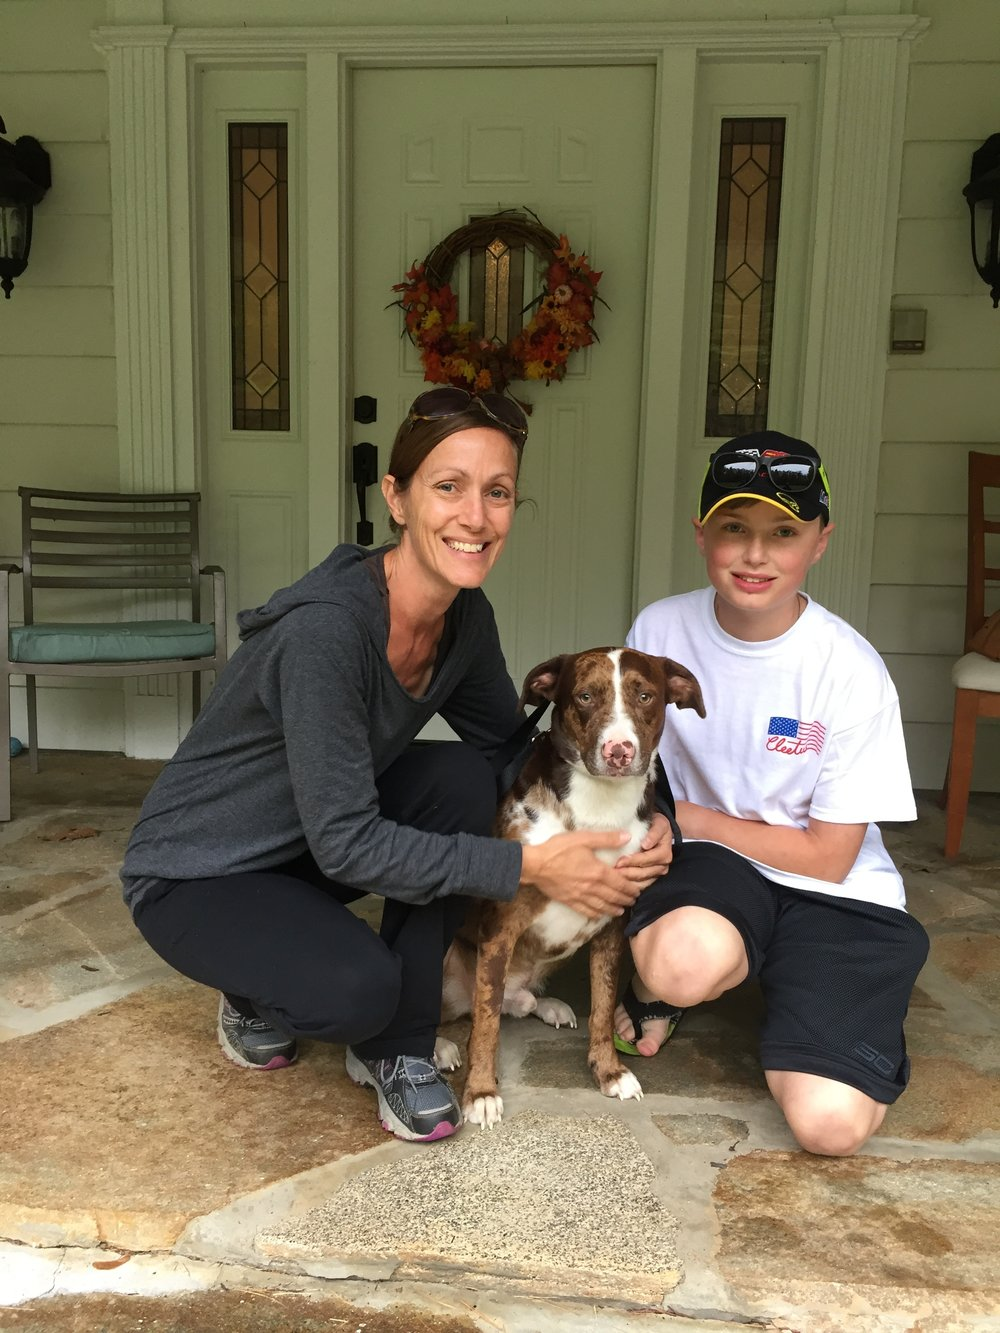 Jackson went to his awesome new home where many adventures await!